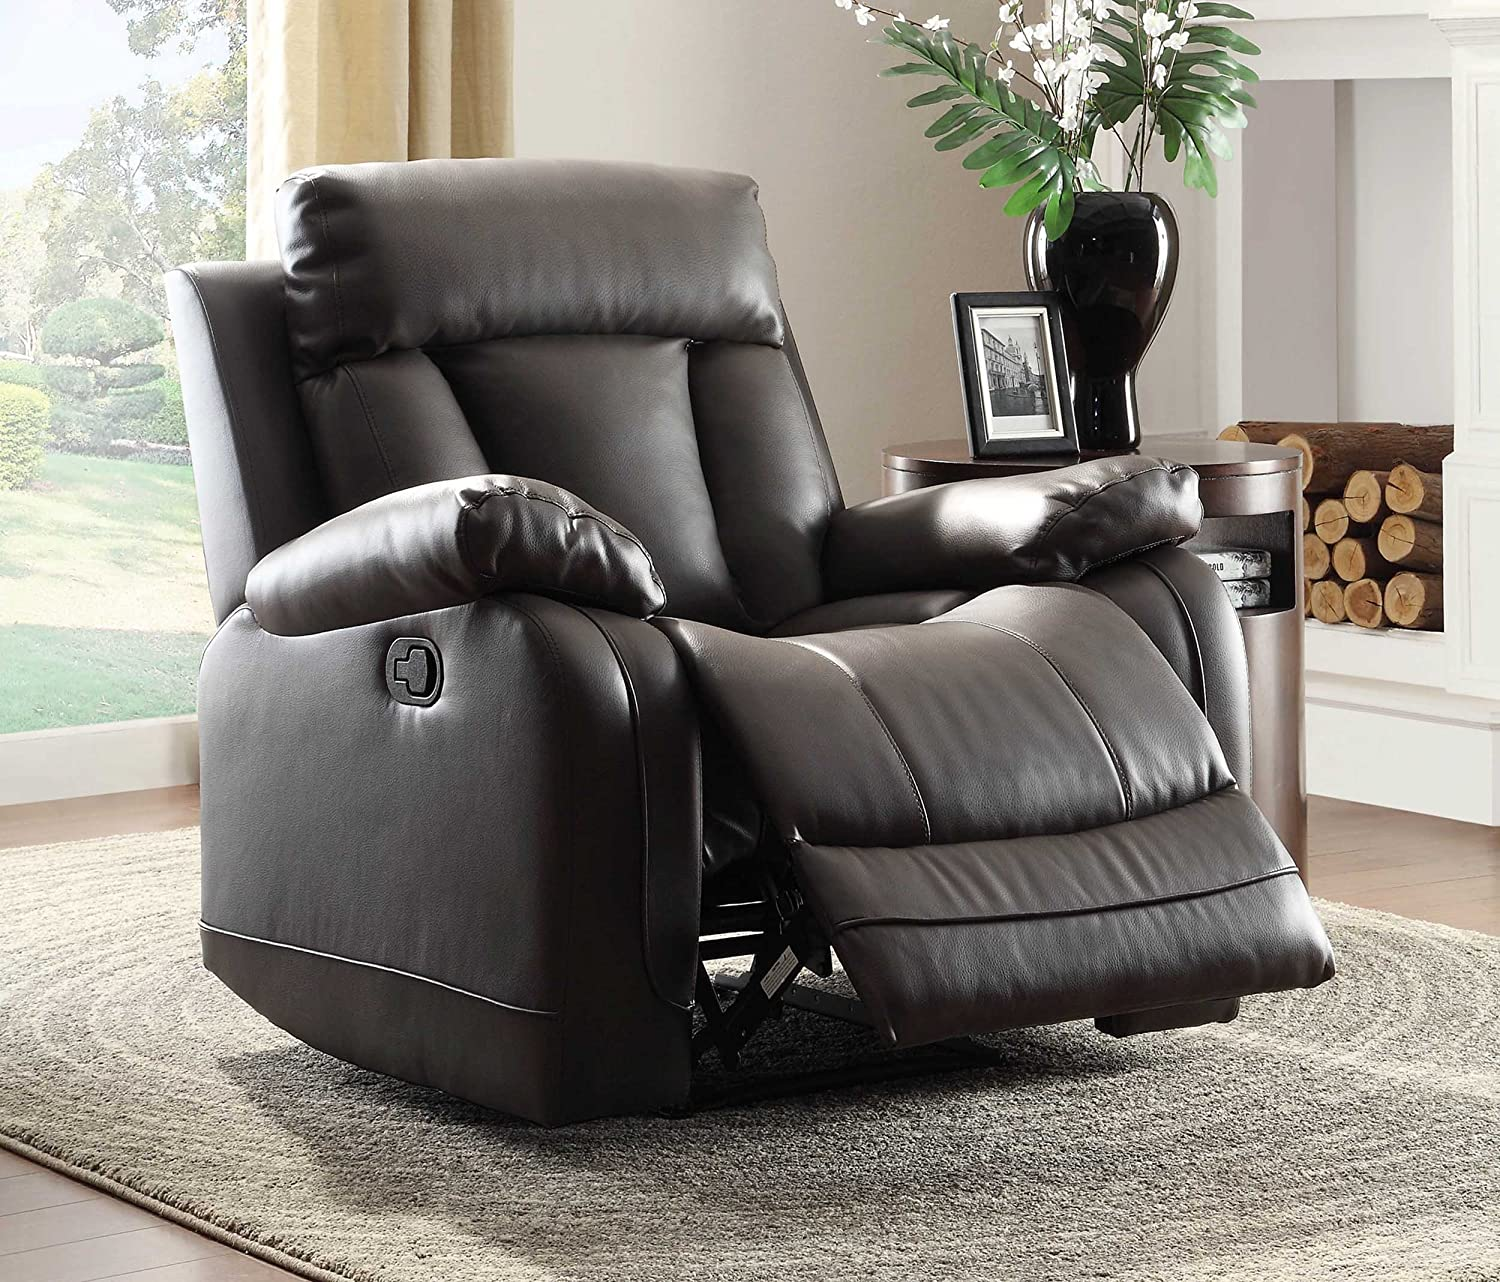 s chairs rooms transformer kane with furniture products headrest room recliners to power living recliner black go